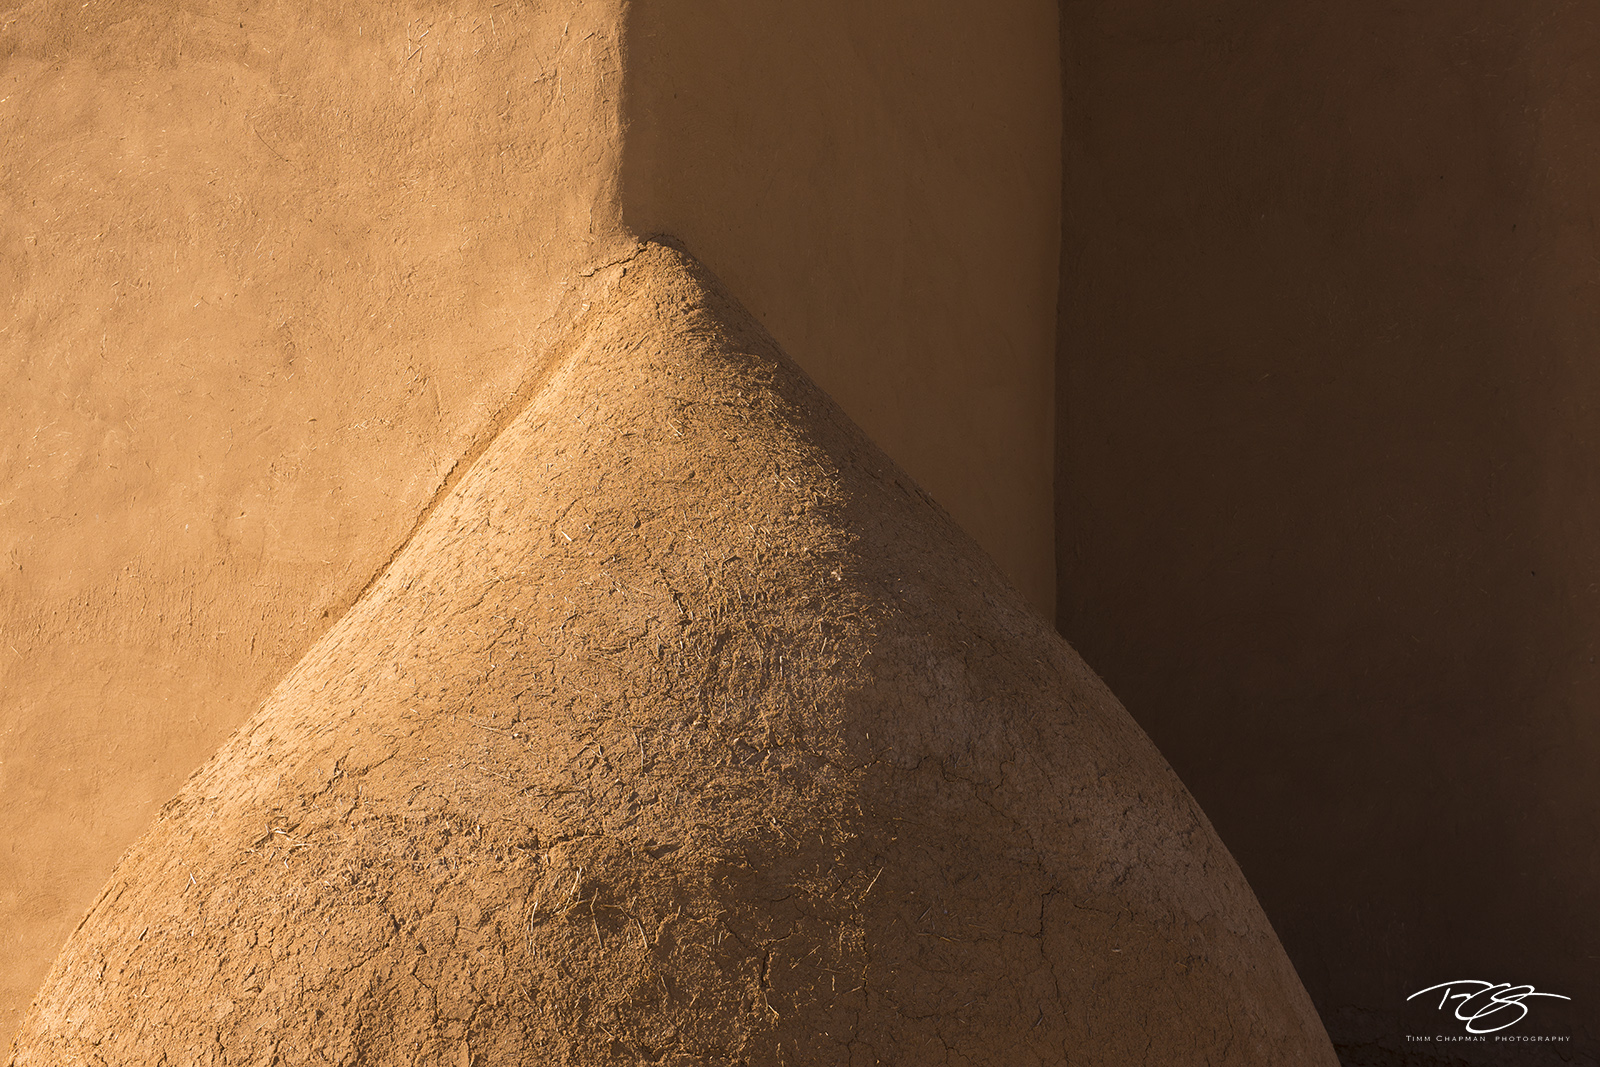 new mexico, gallery, santa fe, Adobe Abstract, taos, st francis de assisi, church, adobe, pueblo, house, clay brick, clay, sand, straw, terracotta, abstract, adobe, light, shadow, photo